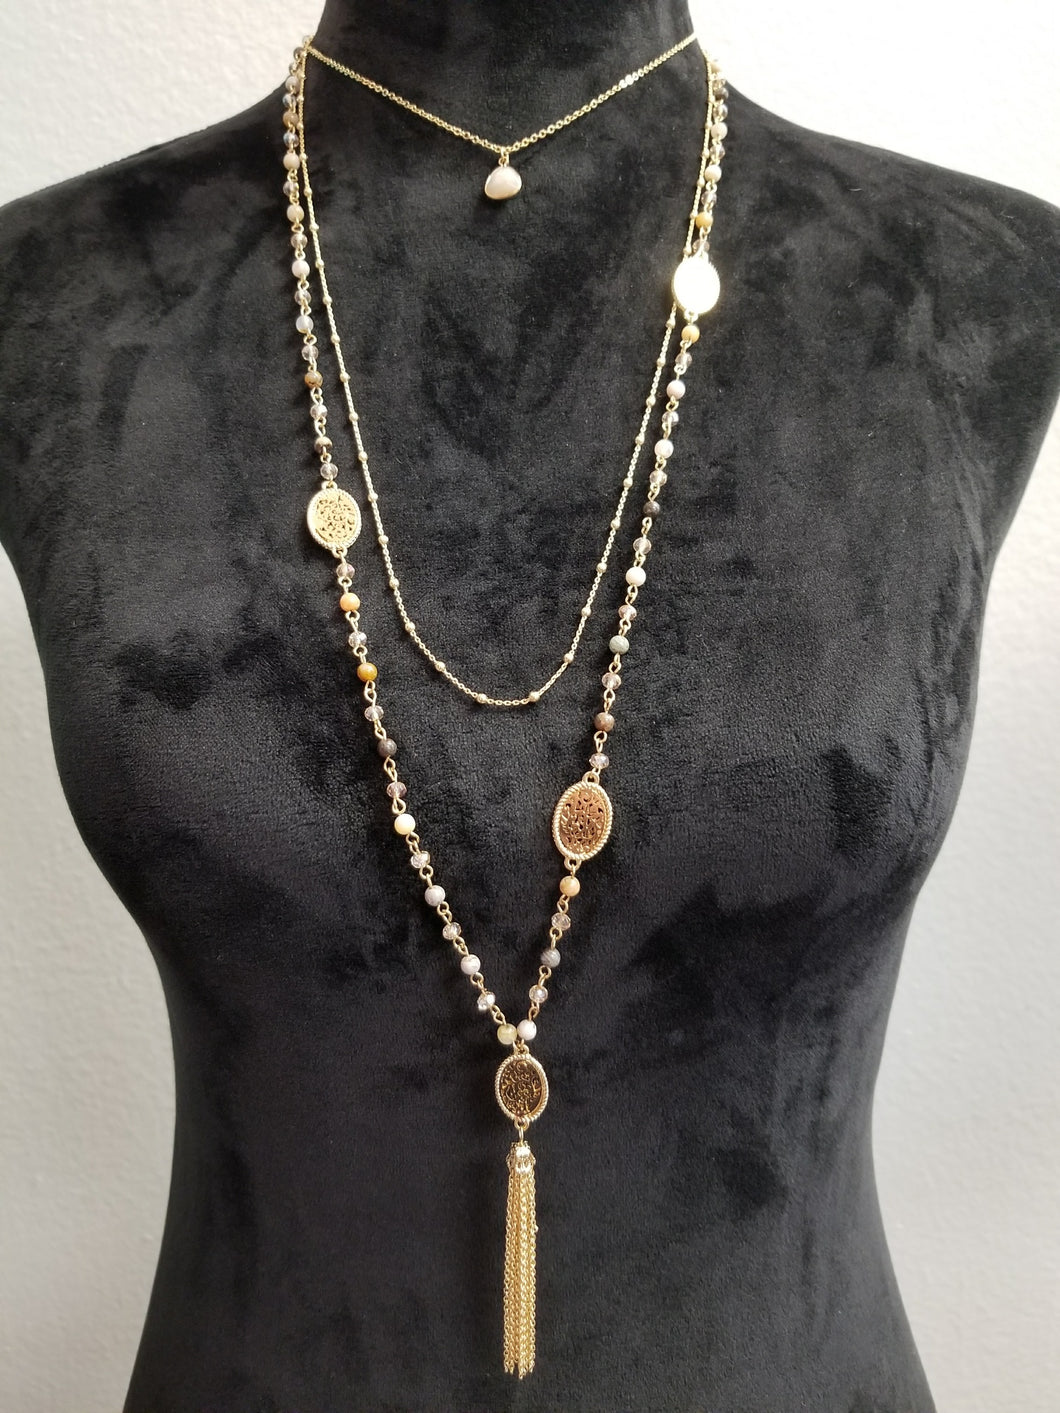 3 Tiered Gold Beaded Necklace